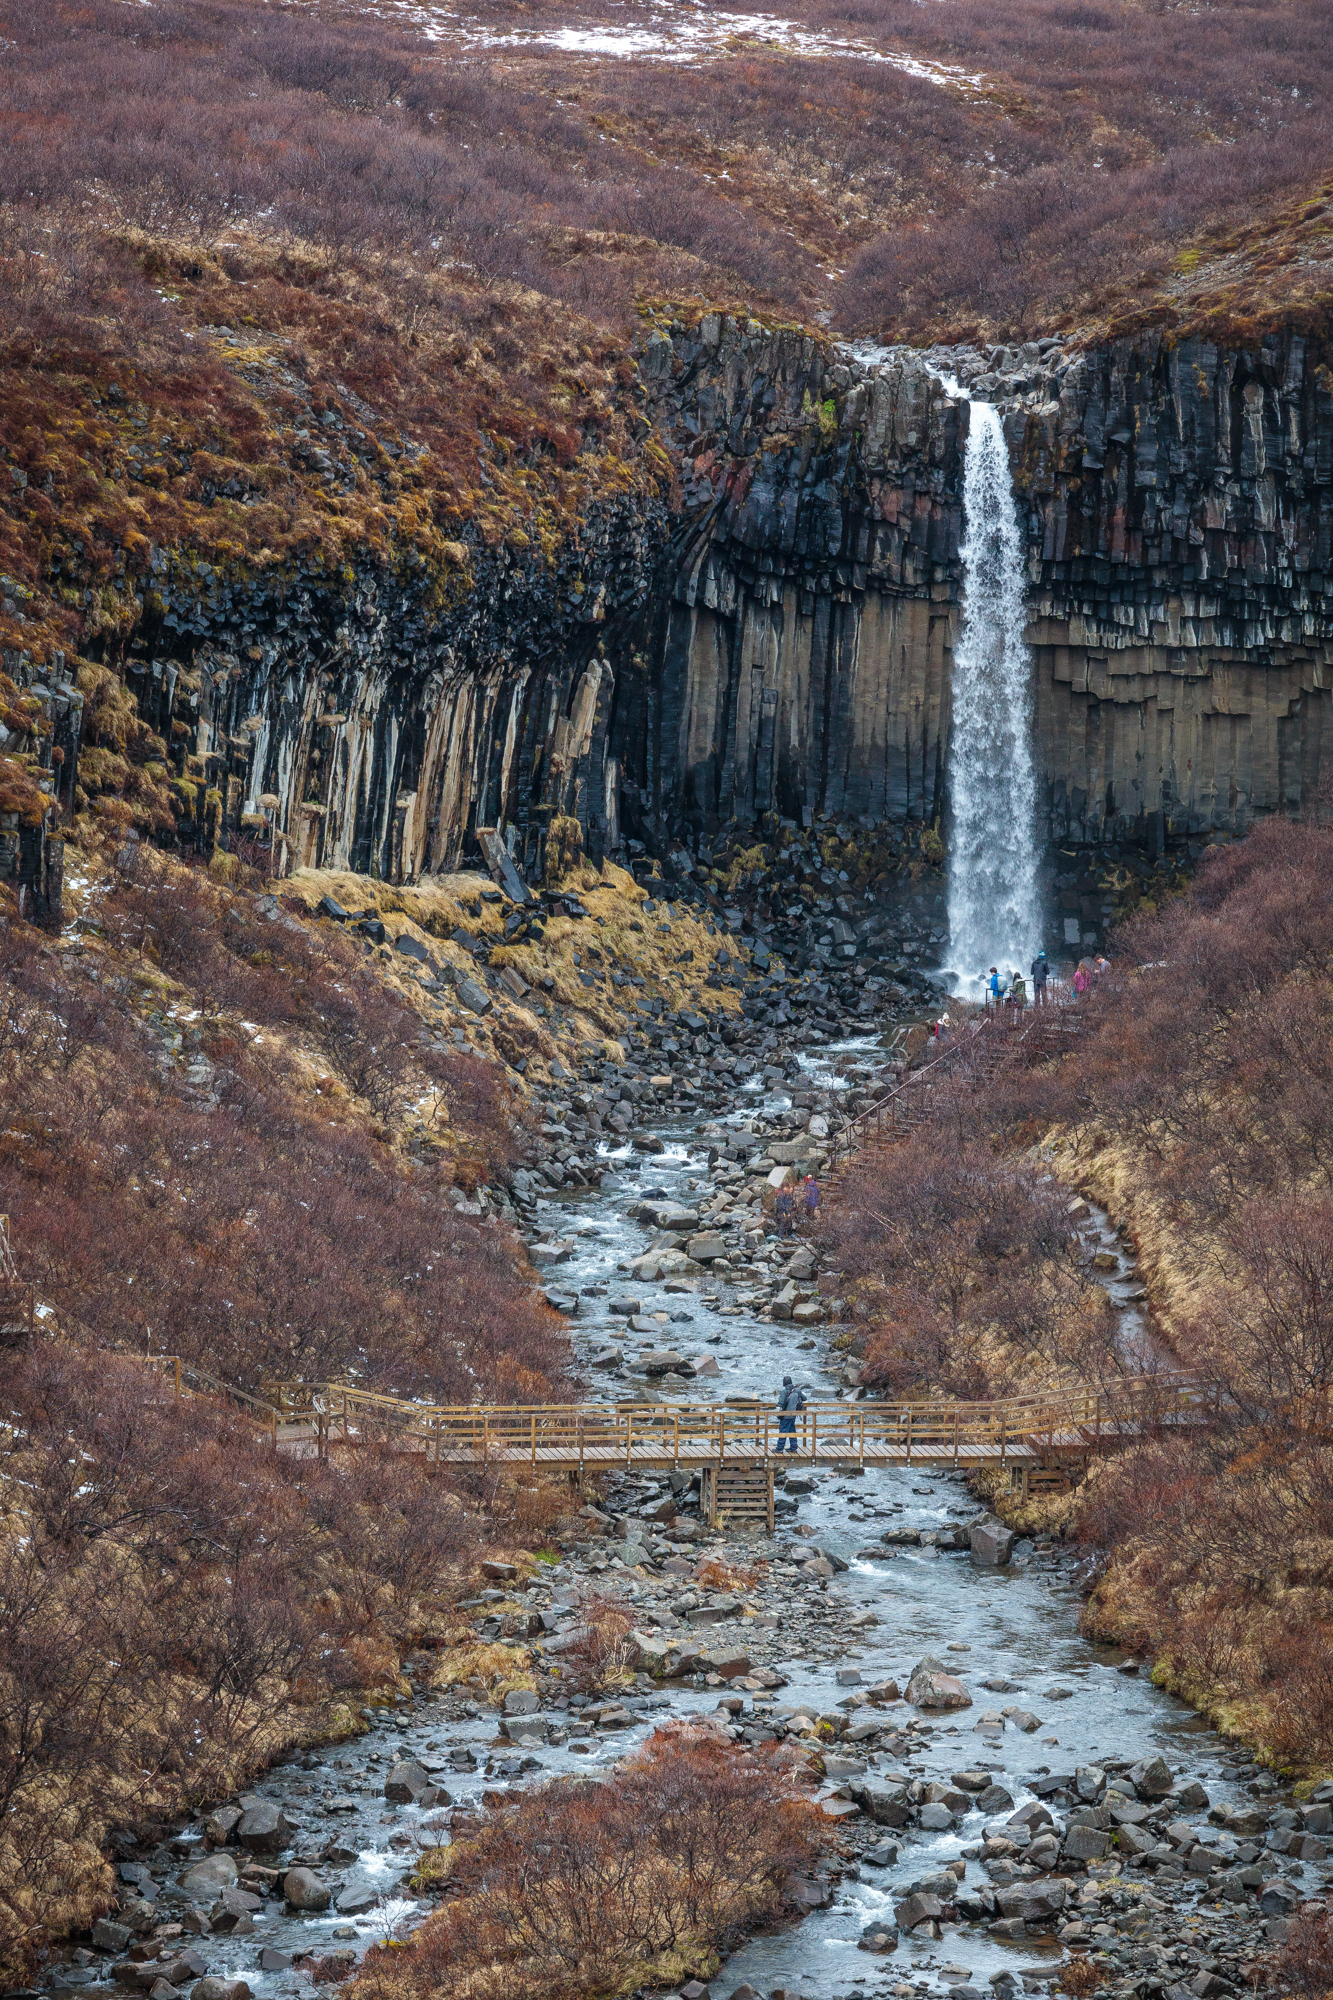 Svartifoss waterfall, Skaftafell National Park